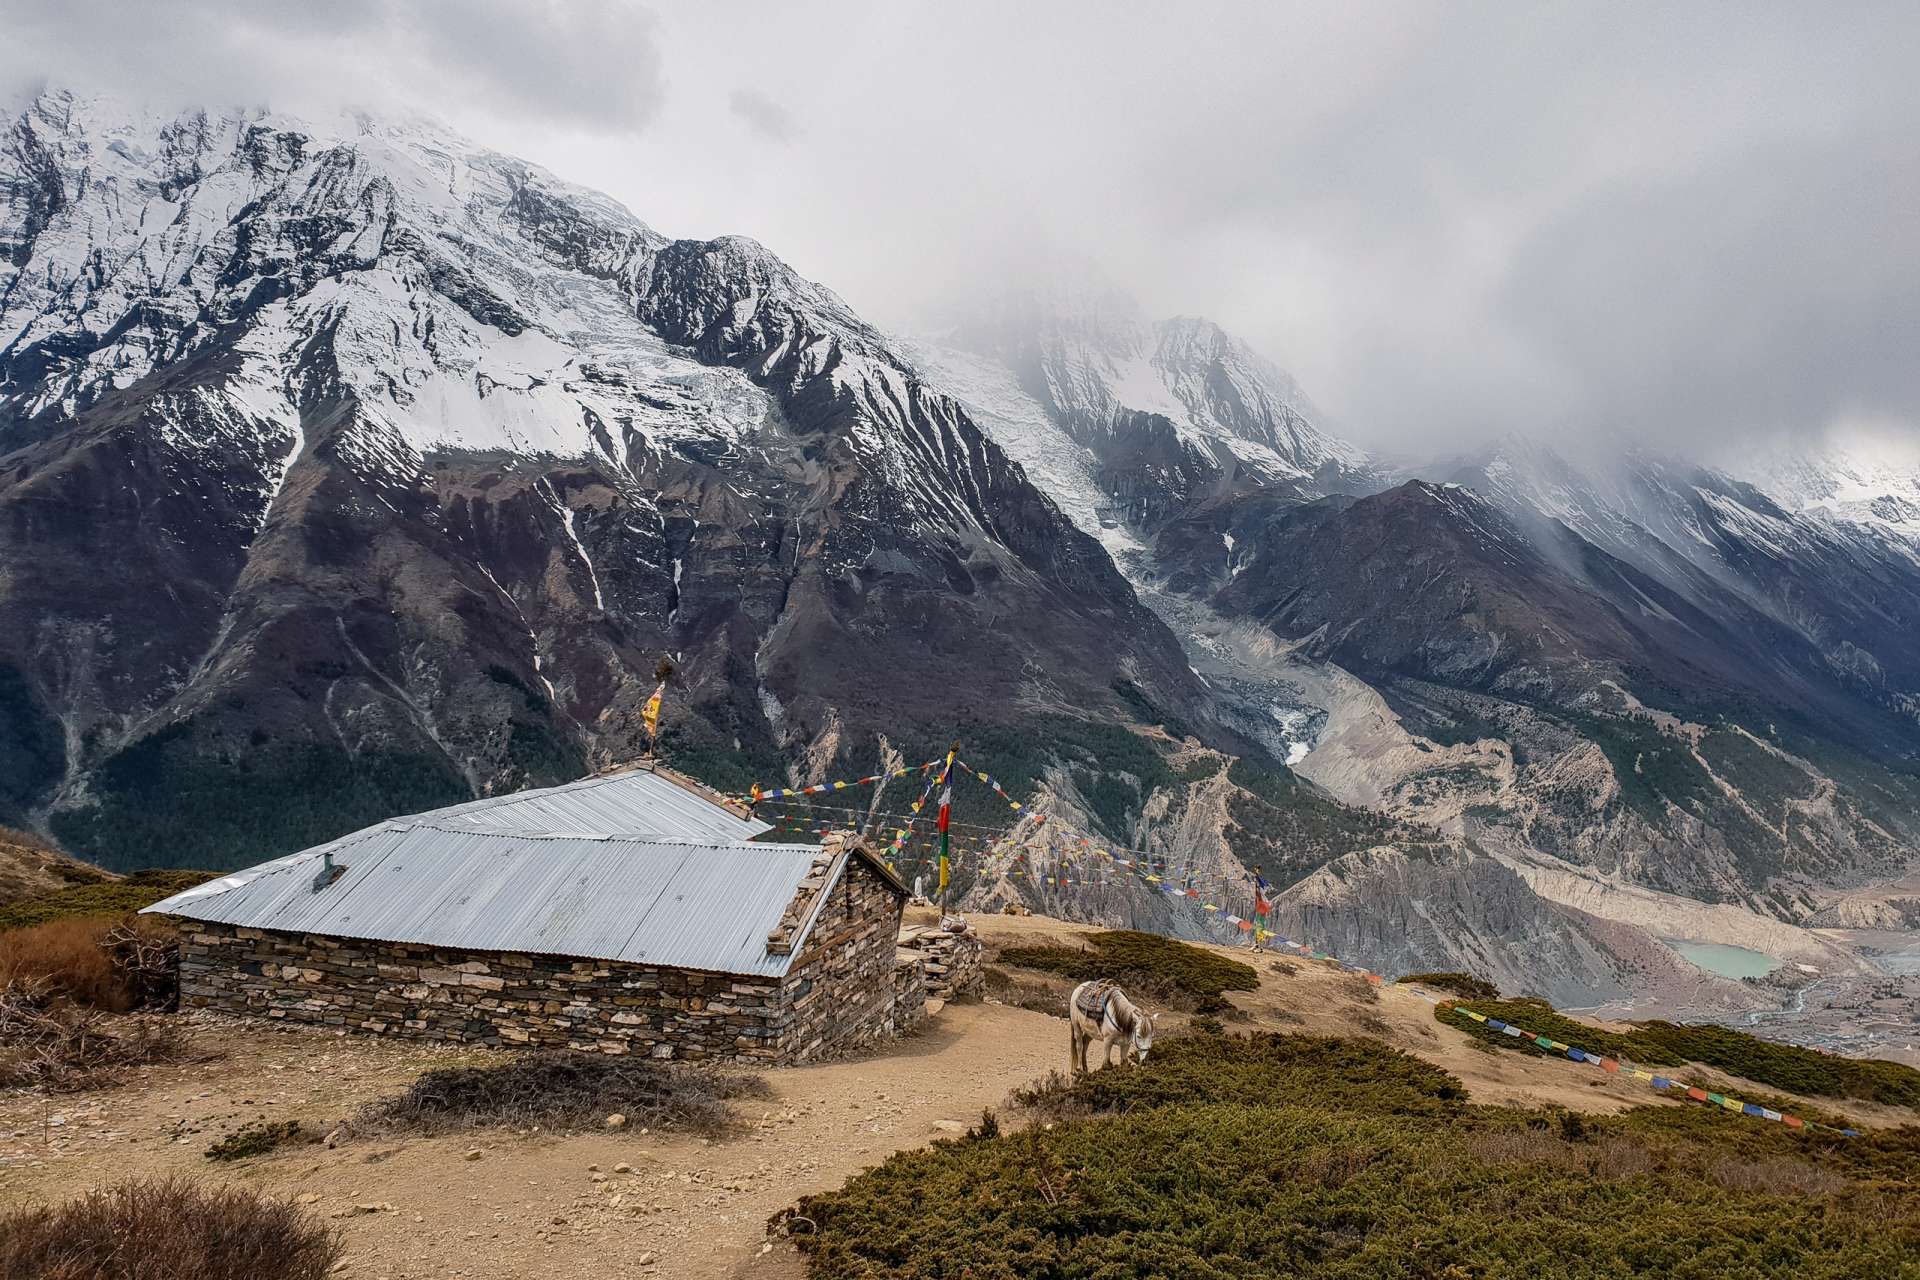 Nepal Annapurna Circuit trekking mountains